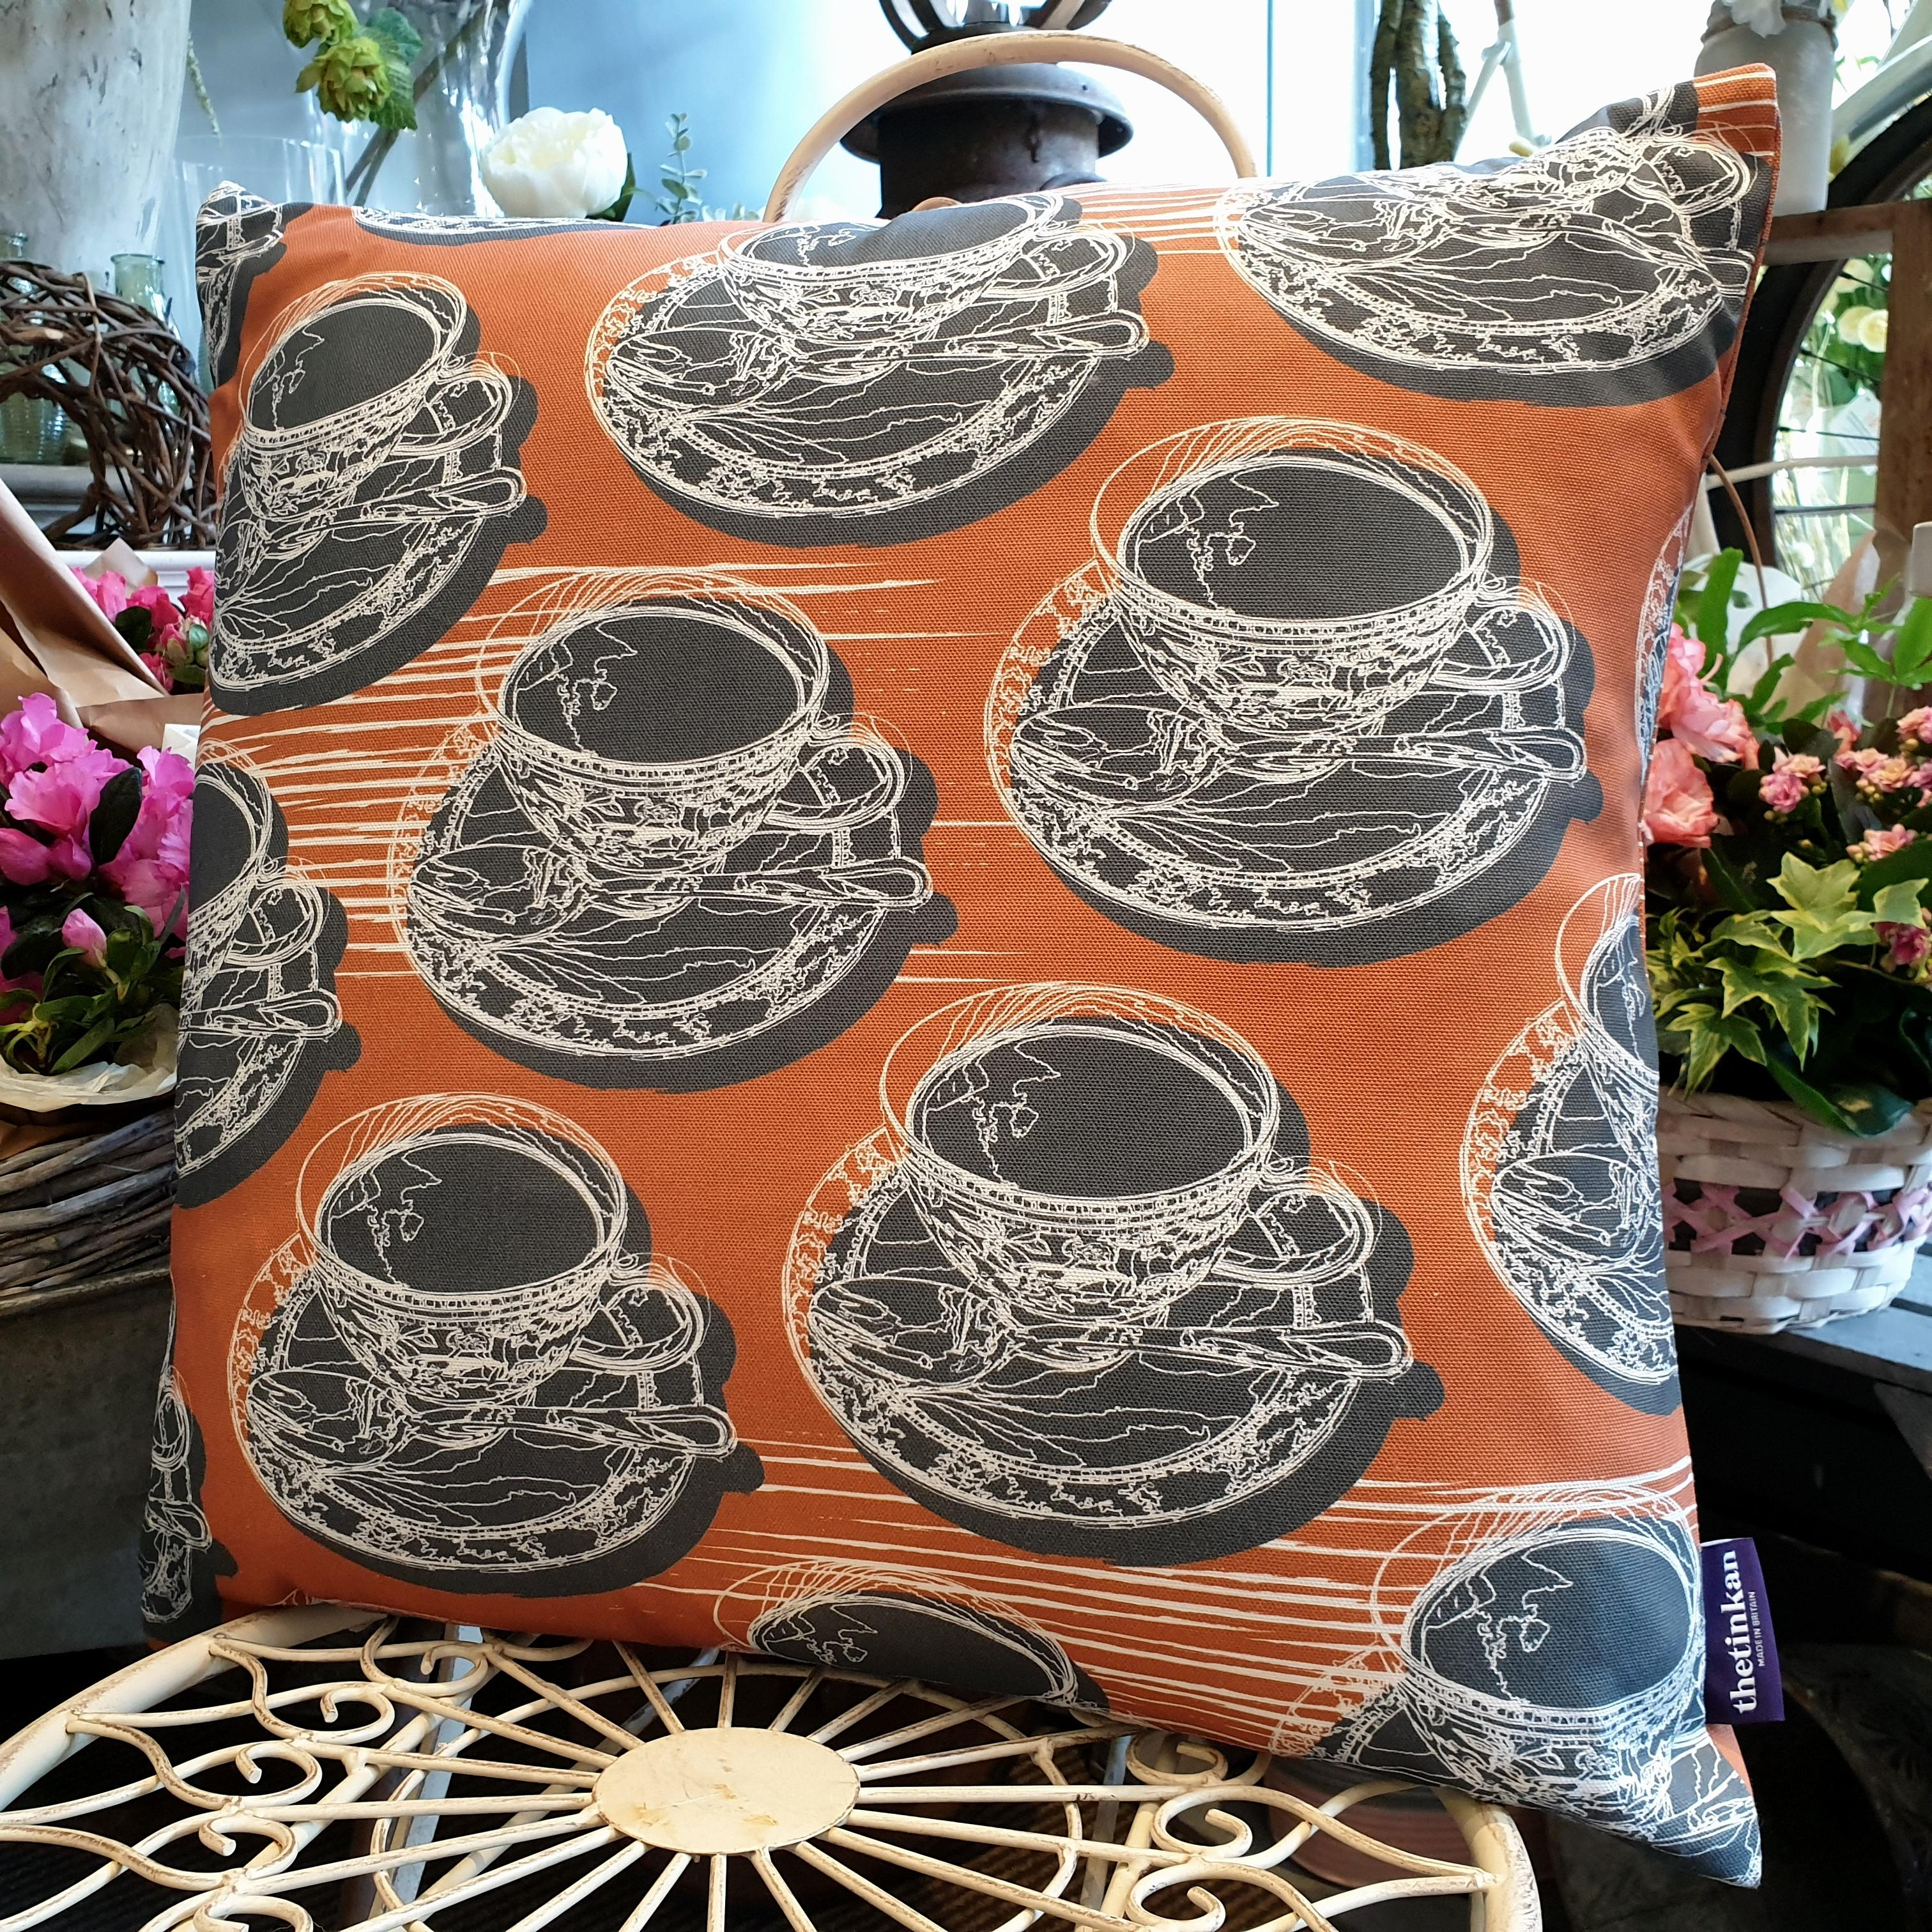 Double-sided warm rust orange 51cm square retro Afternoon Tea cushion with artistic white shards designed by thetinkan. White traced outline of multiple British teacups and saucers each colour filled in charcoal grey. Available with an optional luxury cushion inner pad. VIEW PRODUCT >>